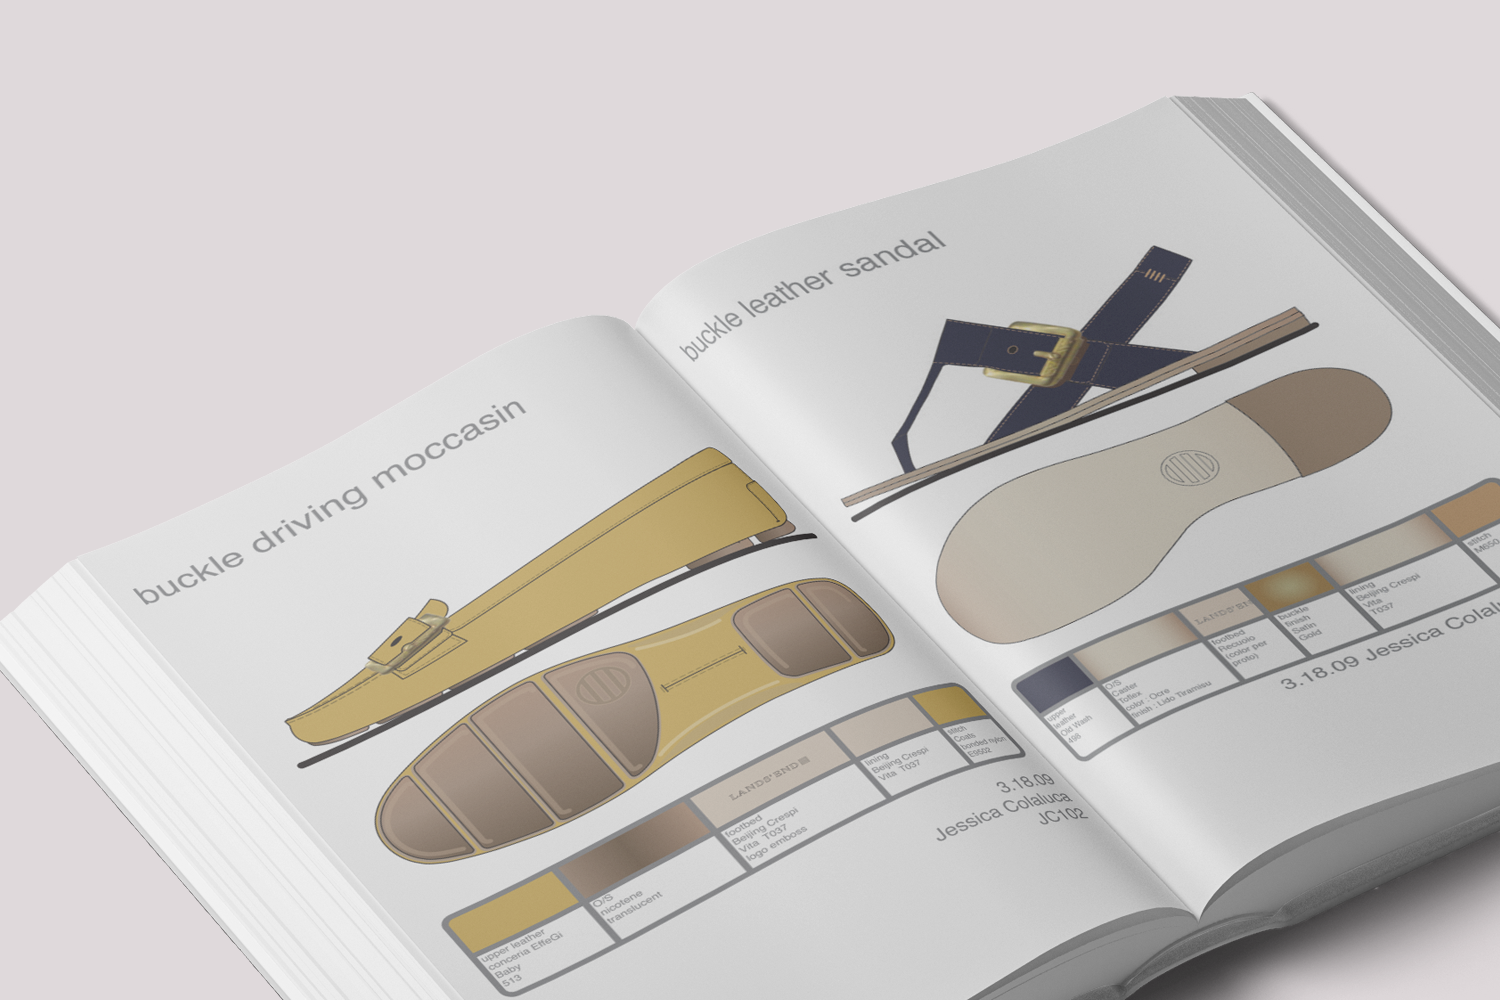 Lands' End | Seed Design Consultancy